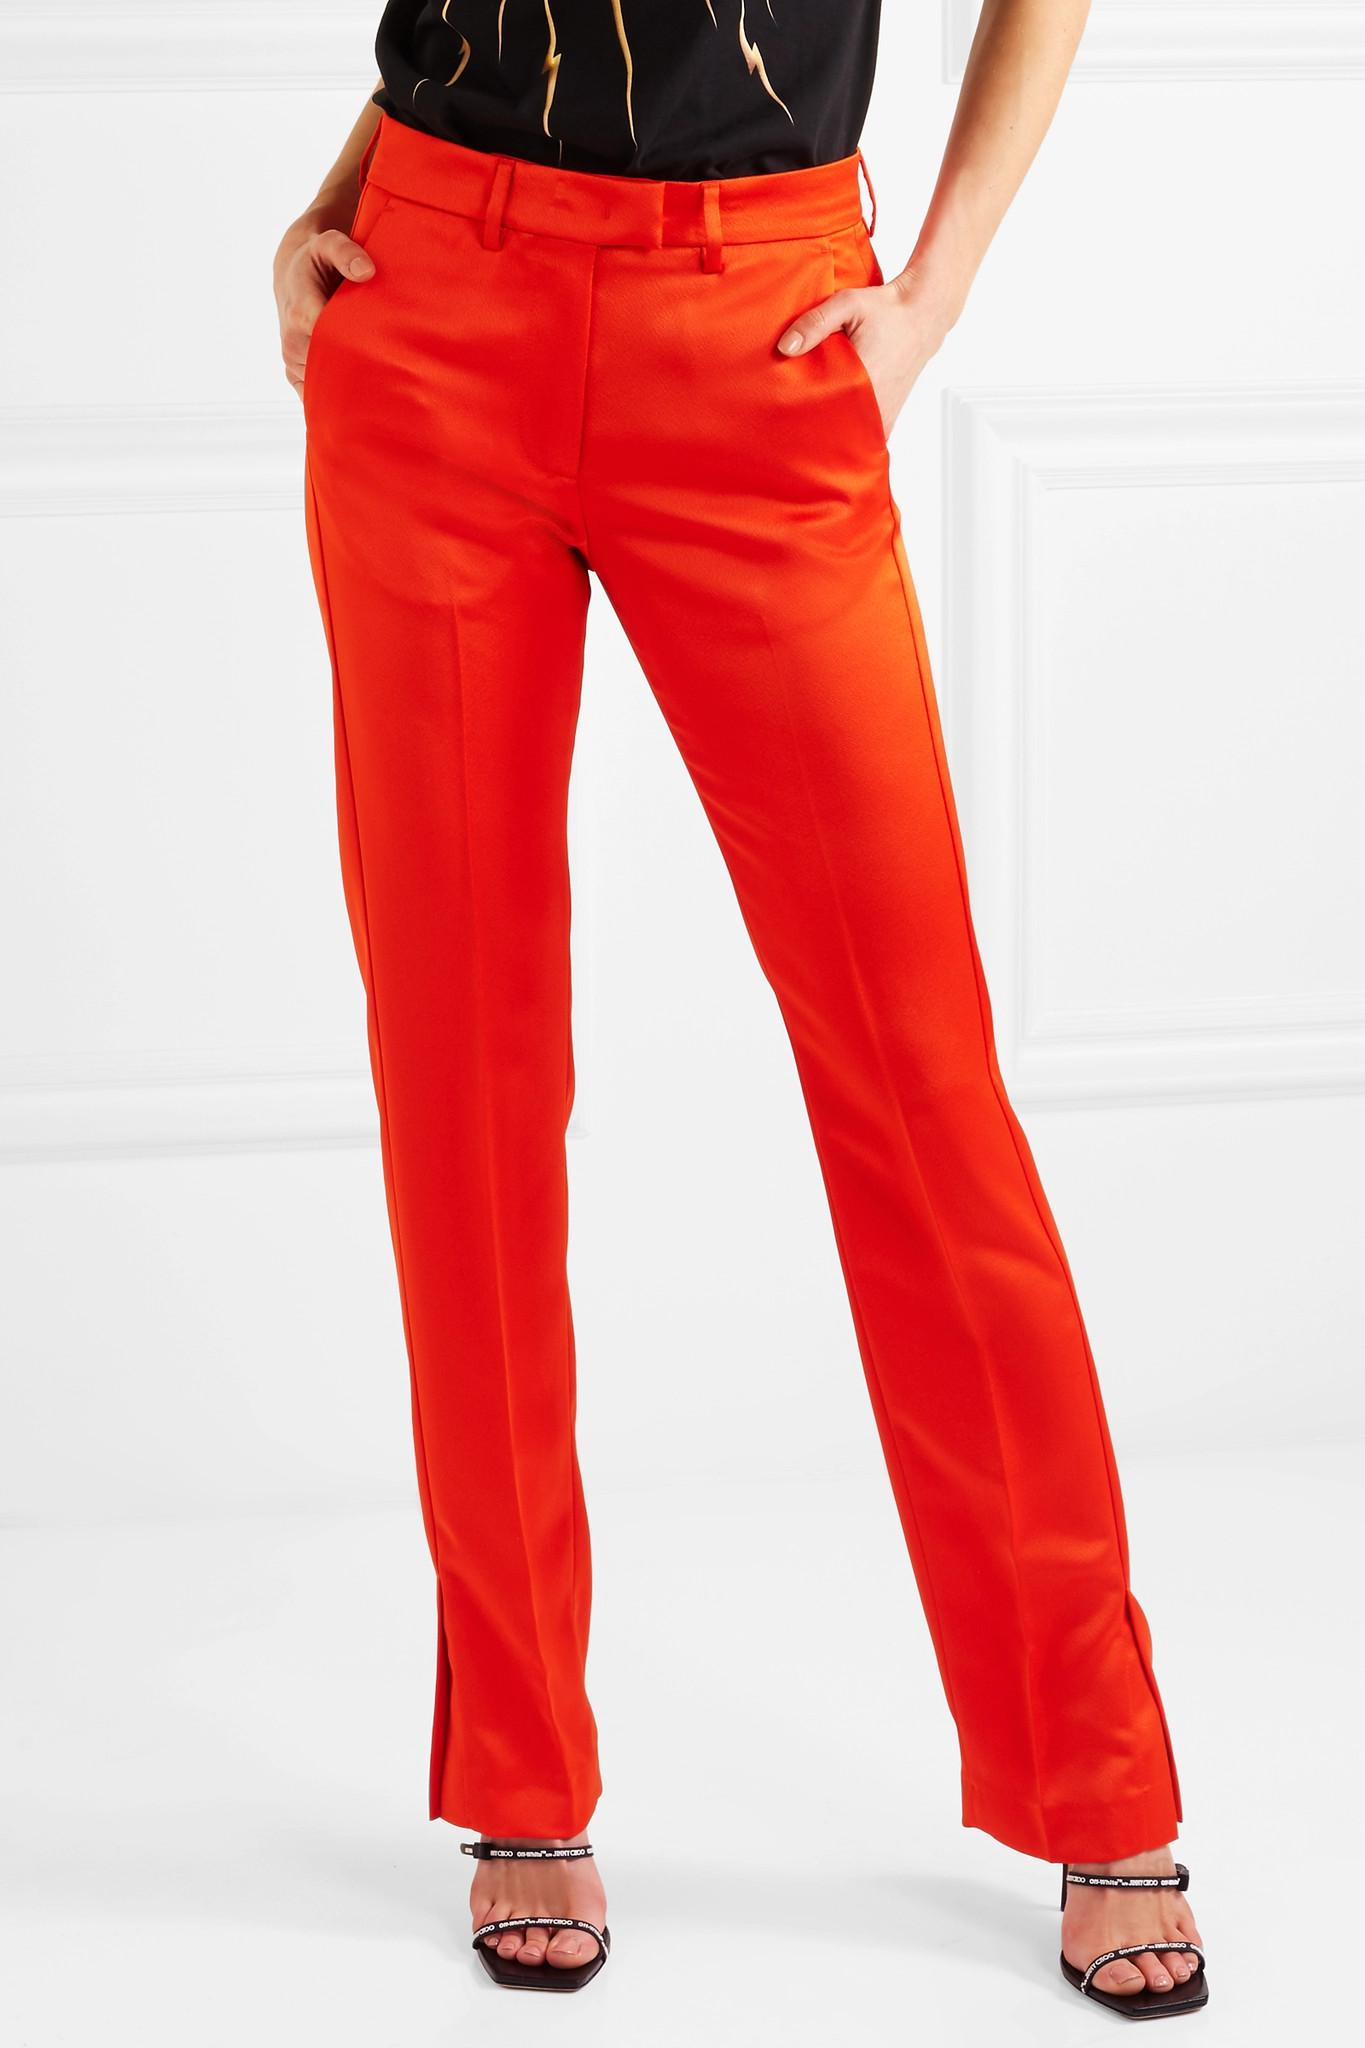 Satin Straight-leg Pants - Red Msgm a7wOf3FHc